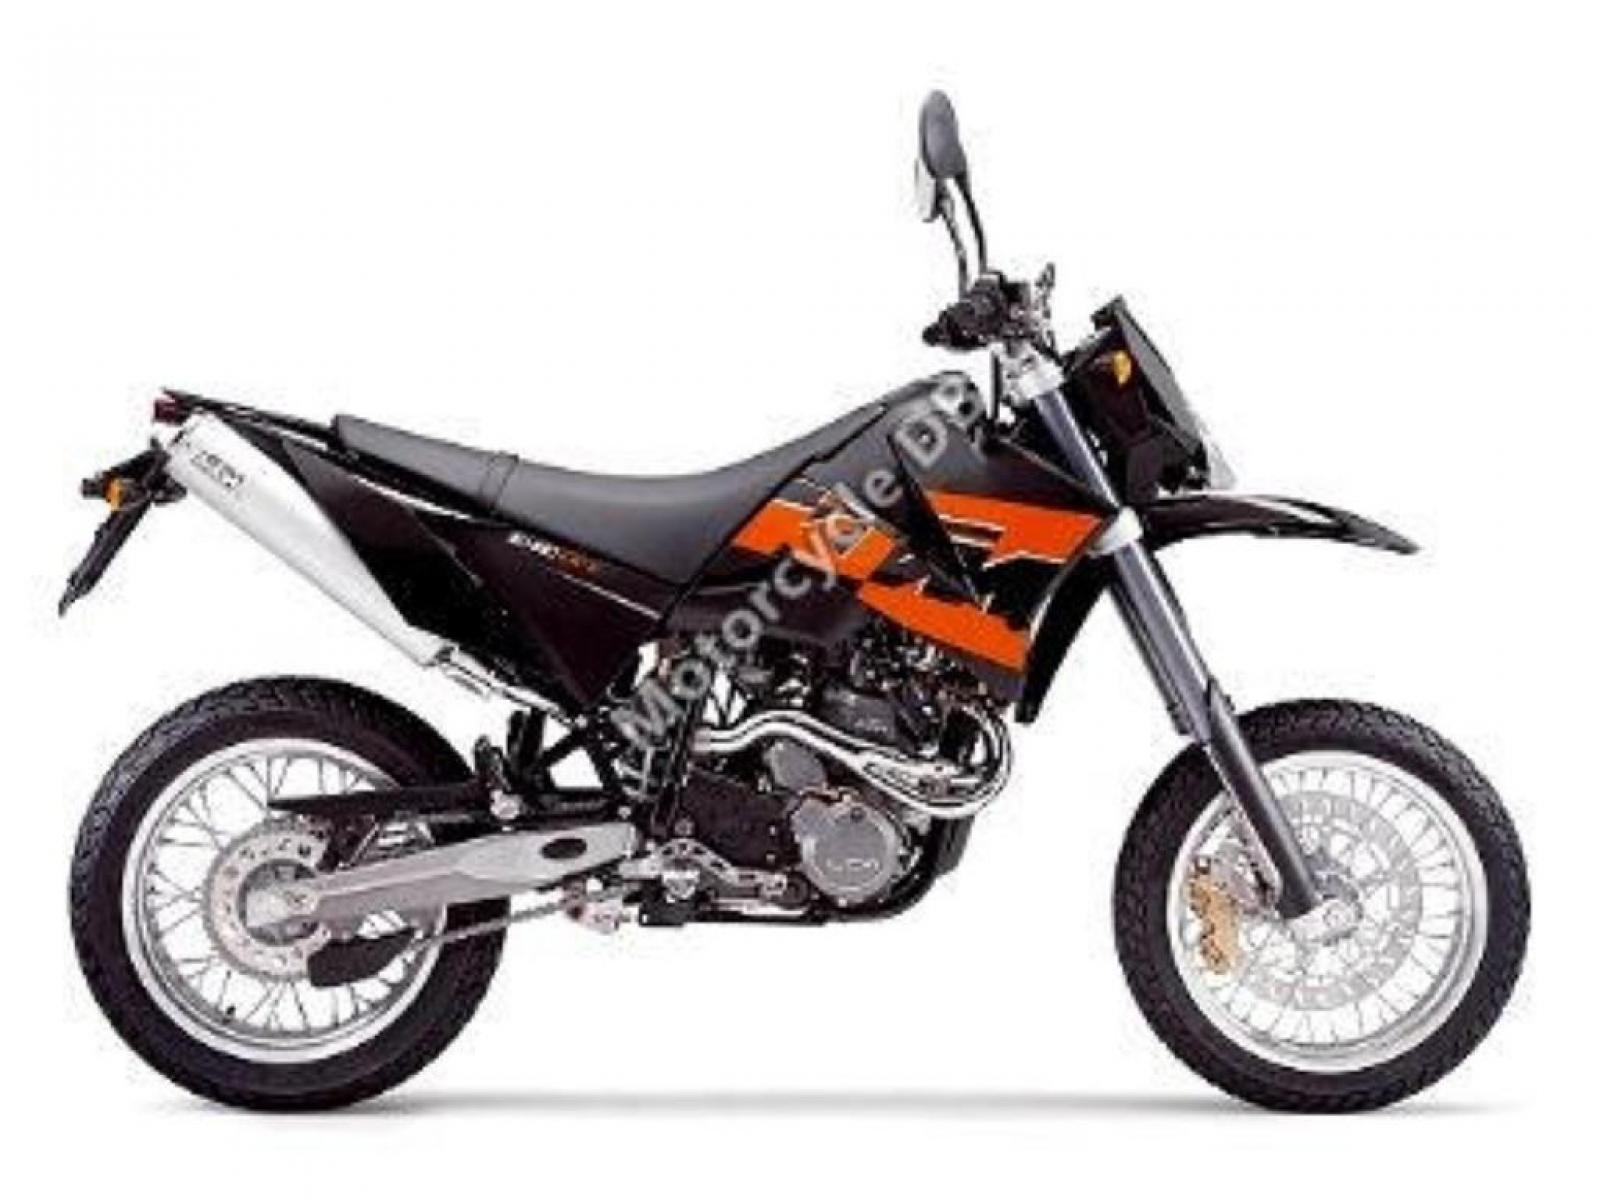 1992 Ktm Enduro 600 Lc 4 Pics Specs And Information